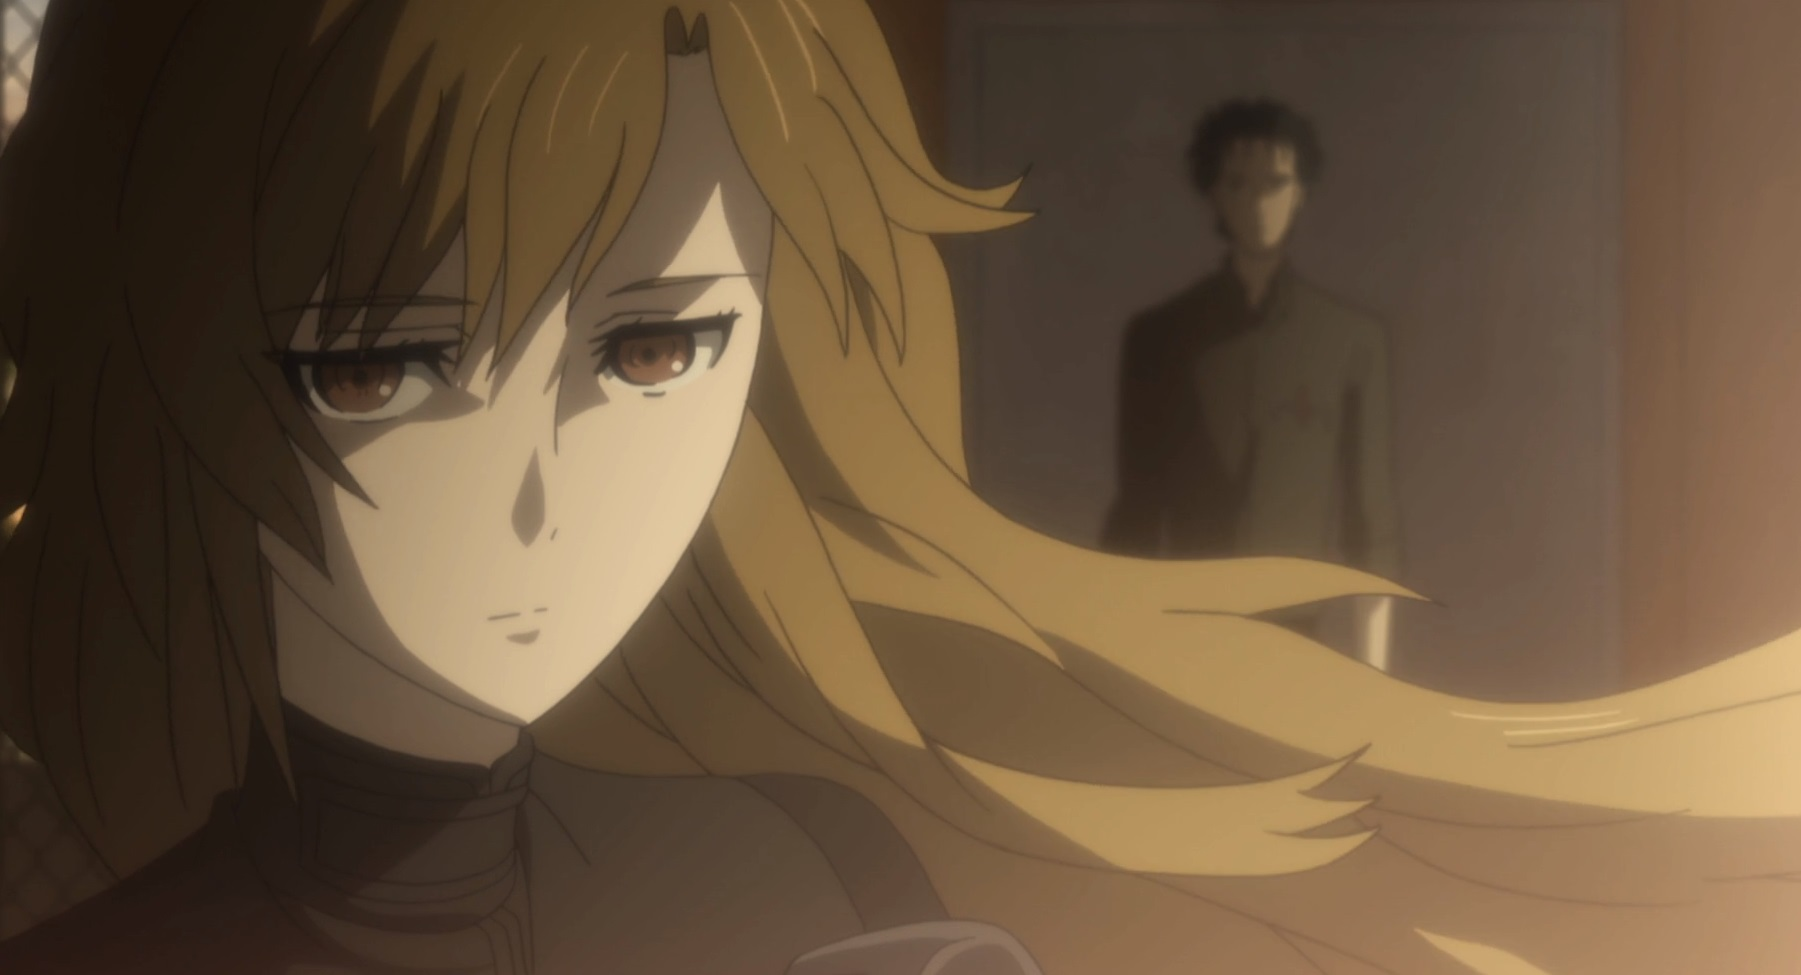 steinsgate 0 e21 review